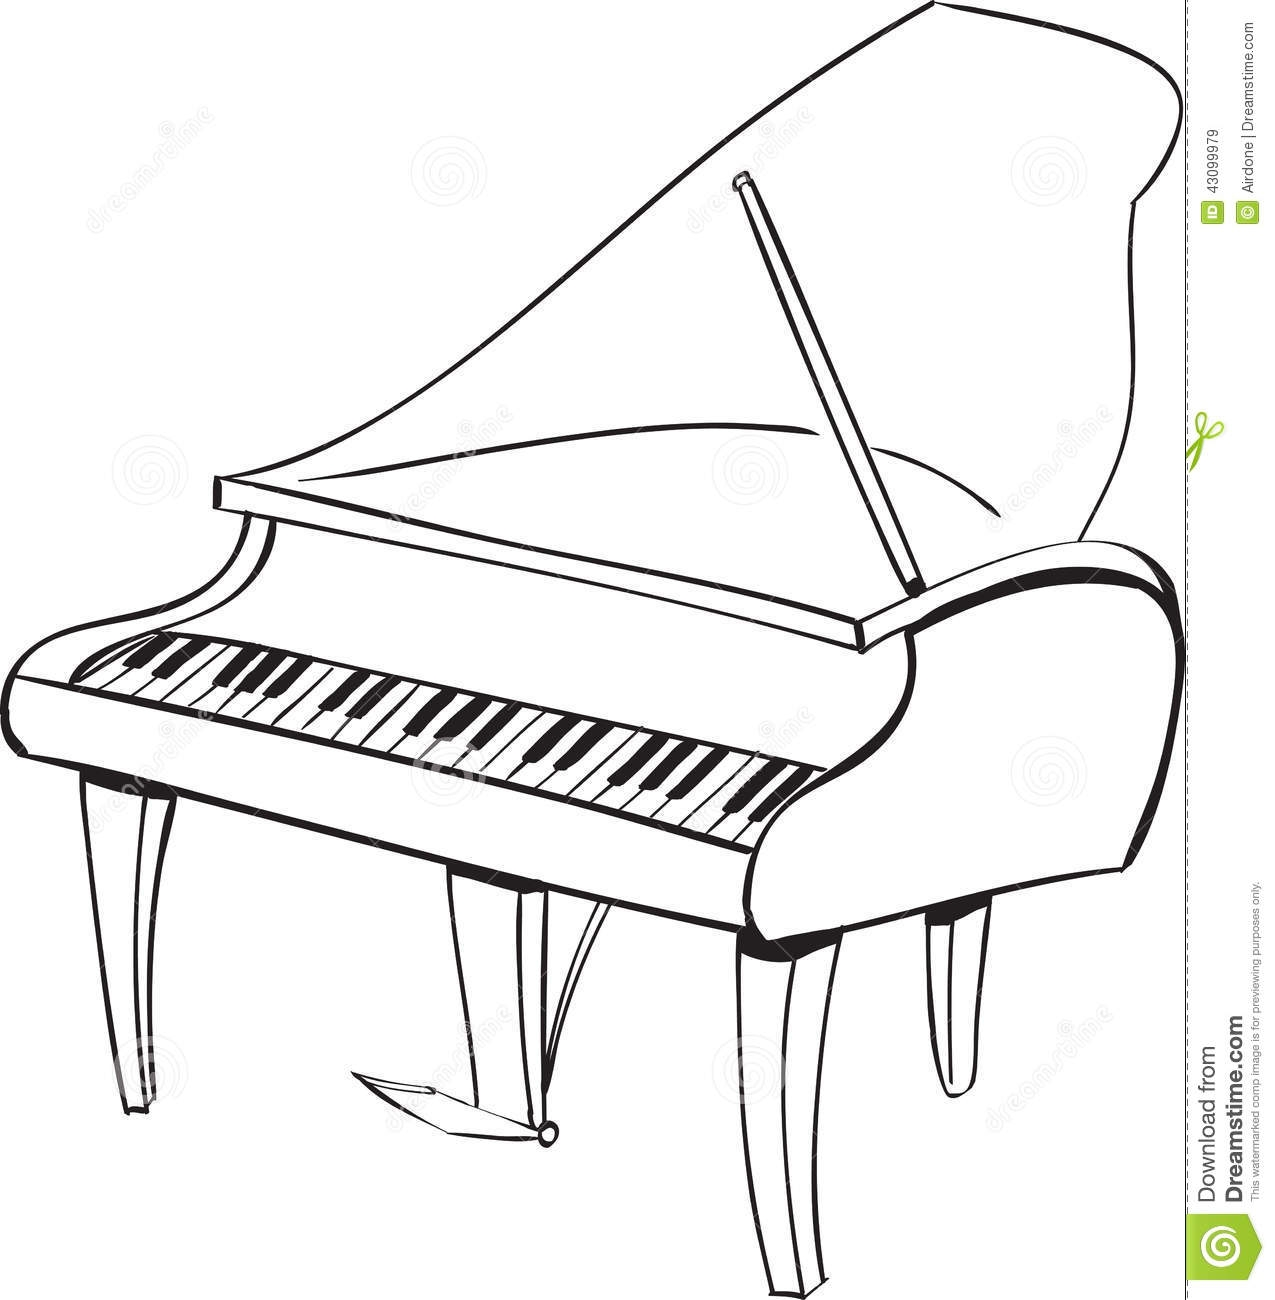 Piano black. Clipart and white station